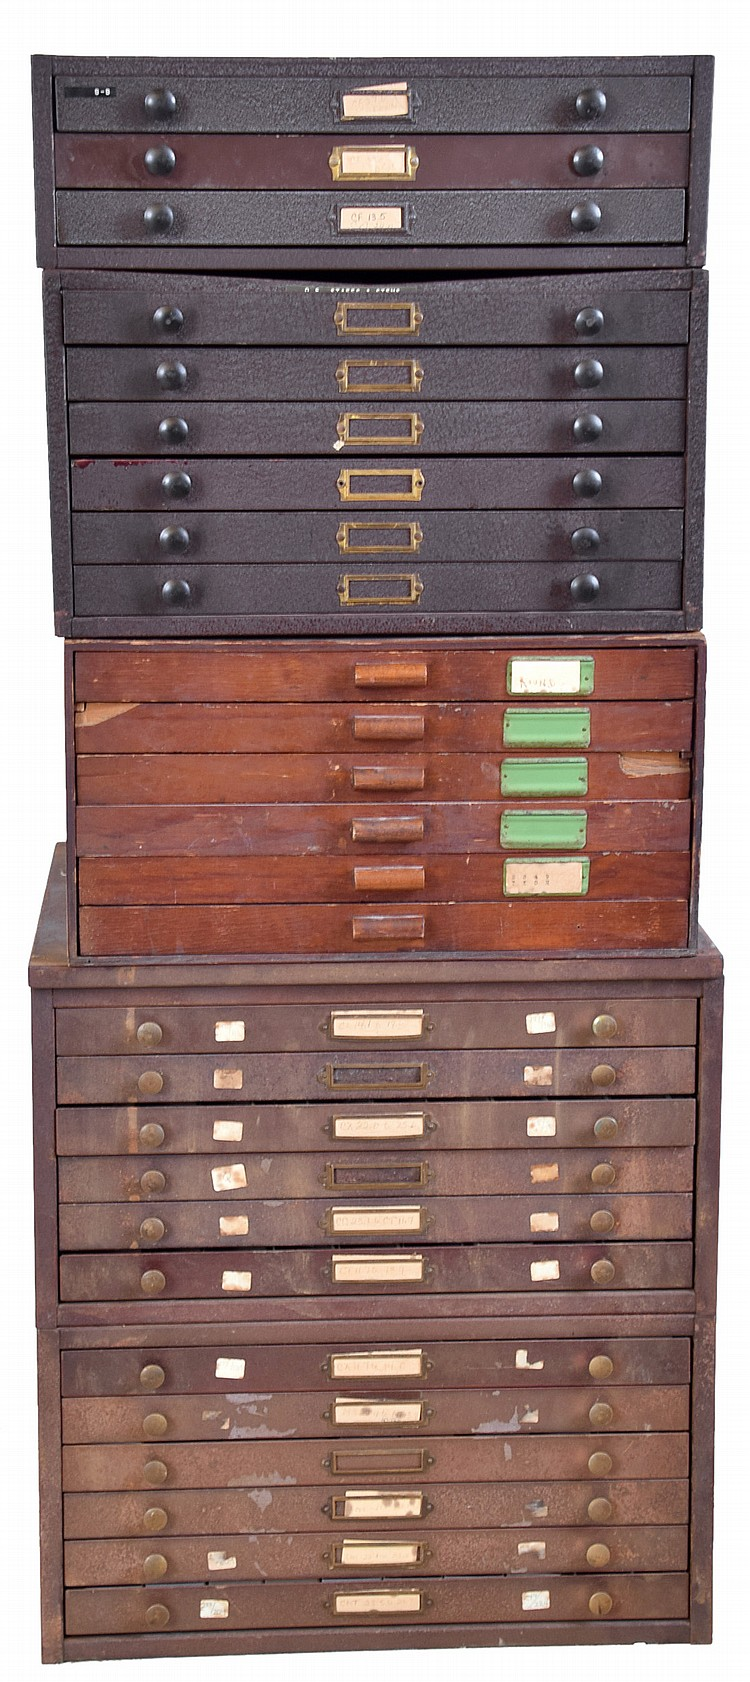 Watch crystals, 27 drawers in 5 old cabinets (four metal, one wood), new / old smaller glass crystals organized with original individual factory stickers, also some packaged wristwatch parts including staffs and stems